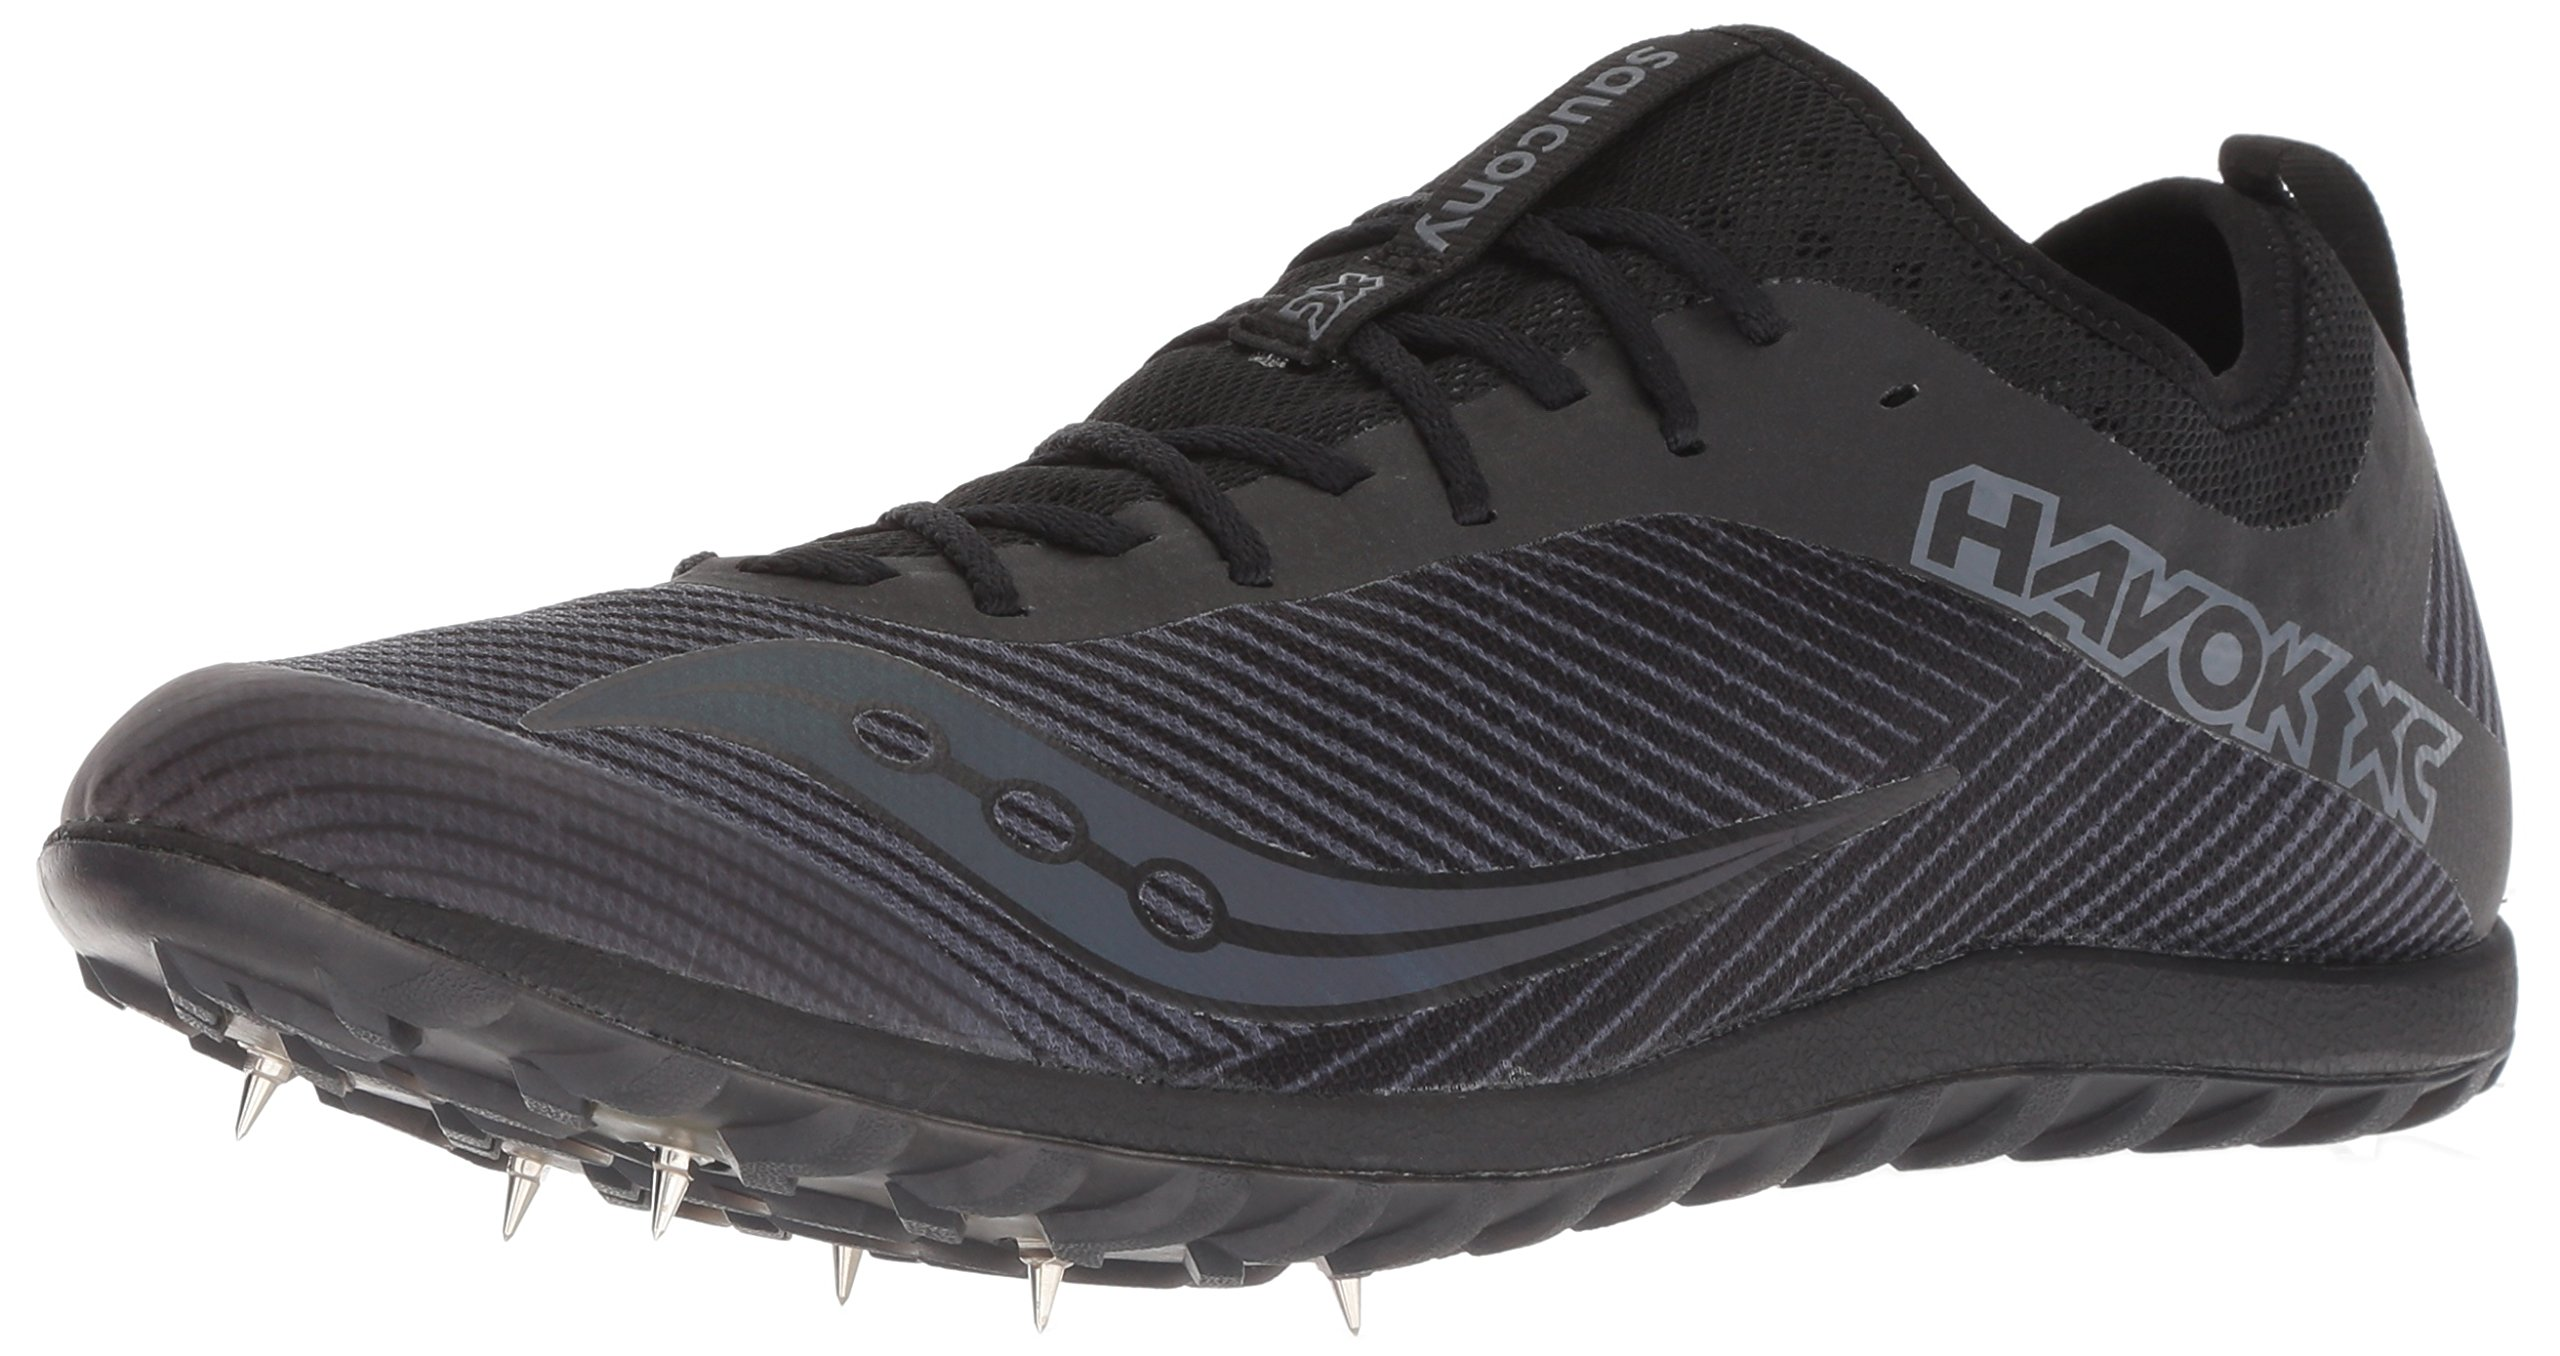 Saucony Men's Havok XC2 Track Shoe, Black, 10.5 M US